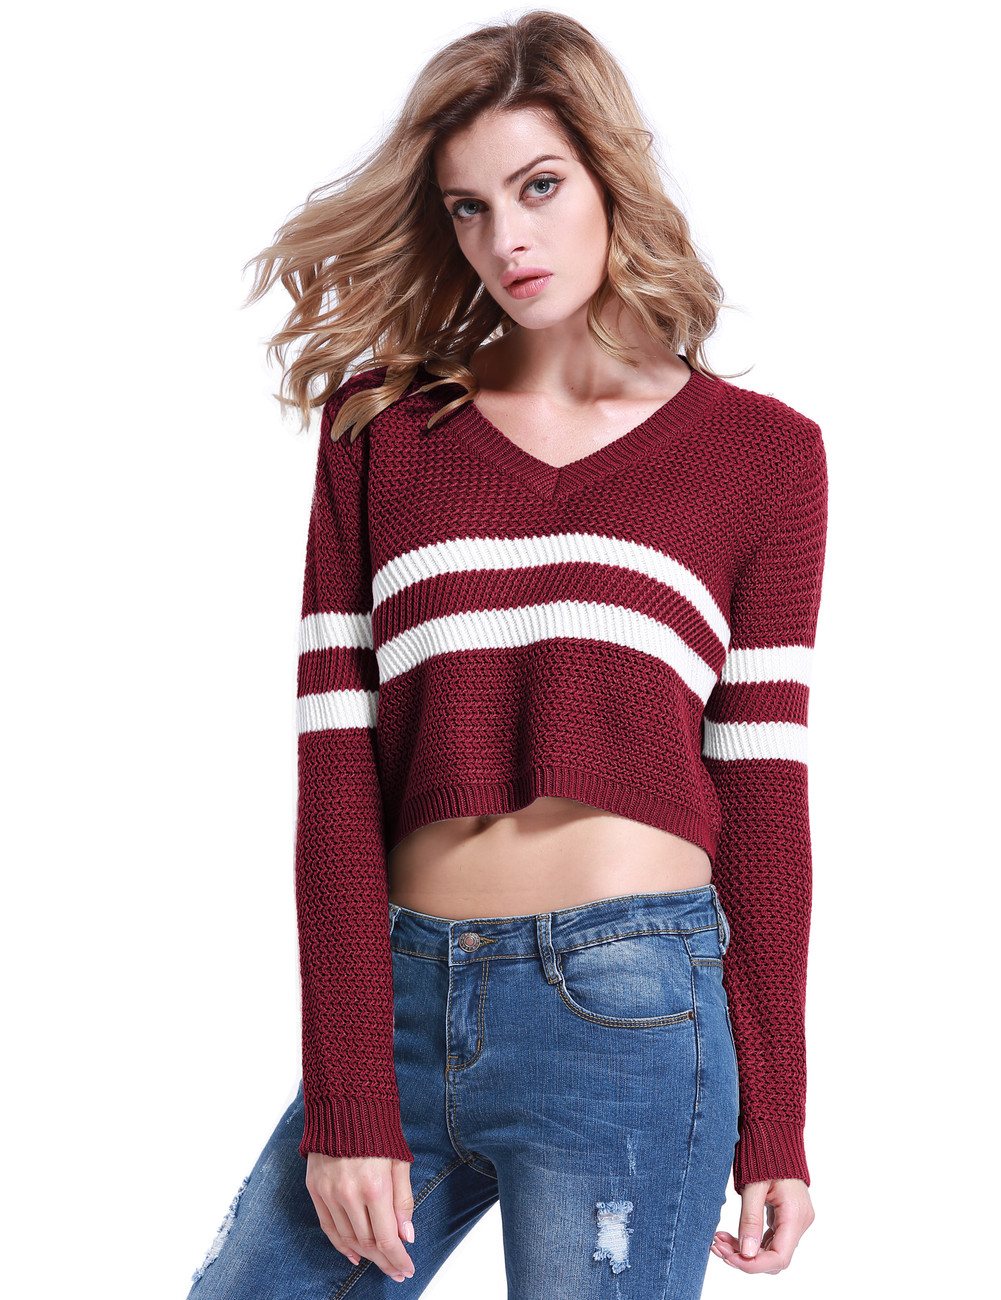 V-neck Striped Knit Crop Sweater Burgundy - PrettyGuide